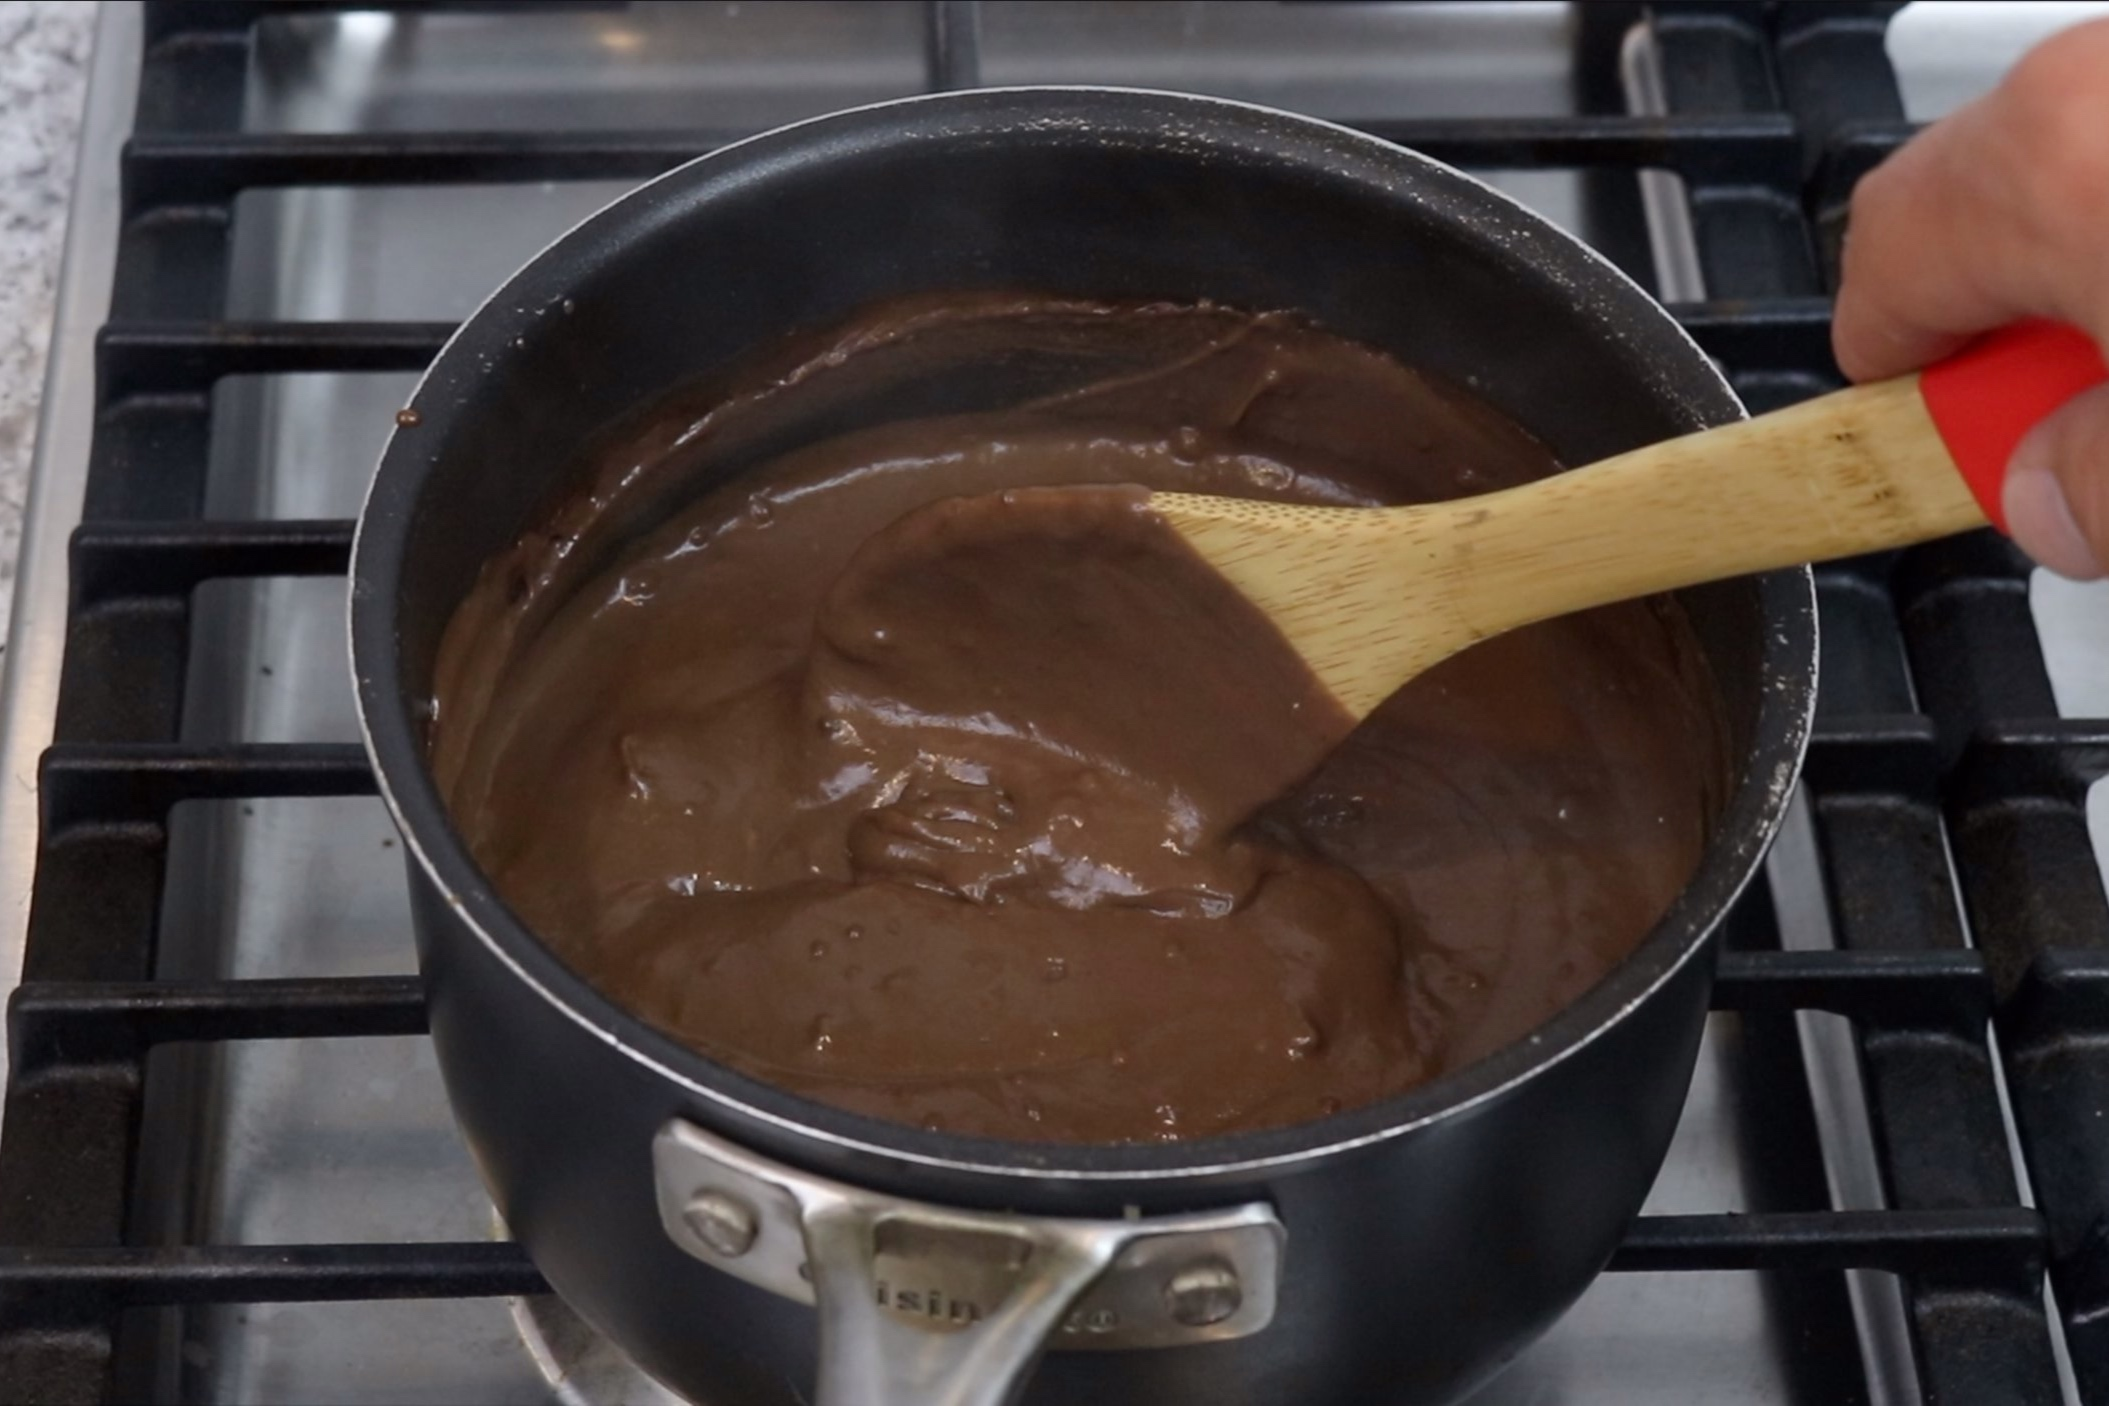 5. Cook for 5-7 minutes over medium-low heat stirring constantly until mixture thickens to a pudding like consistency. -